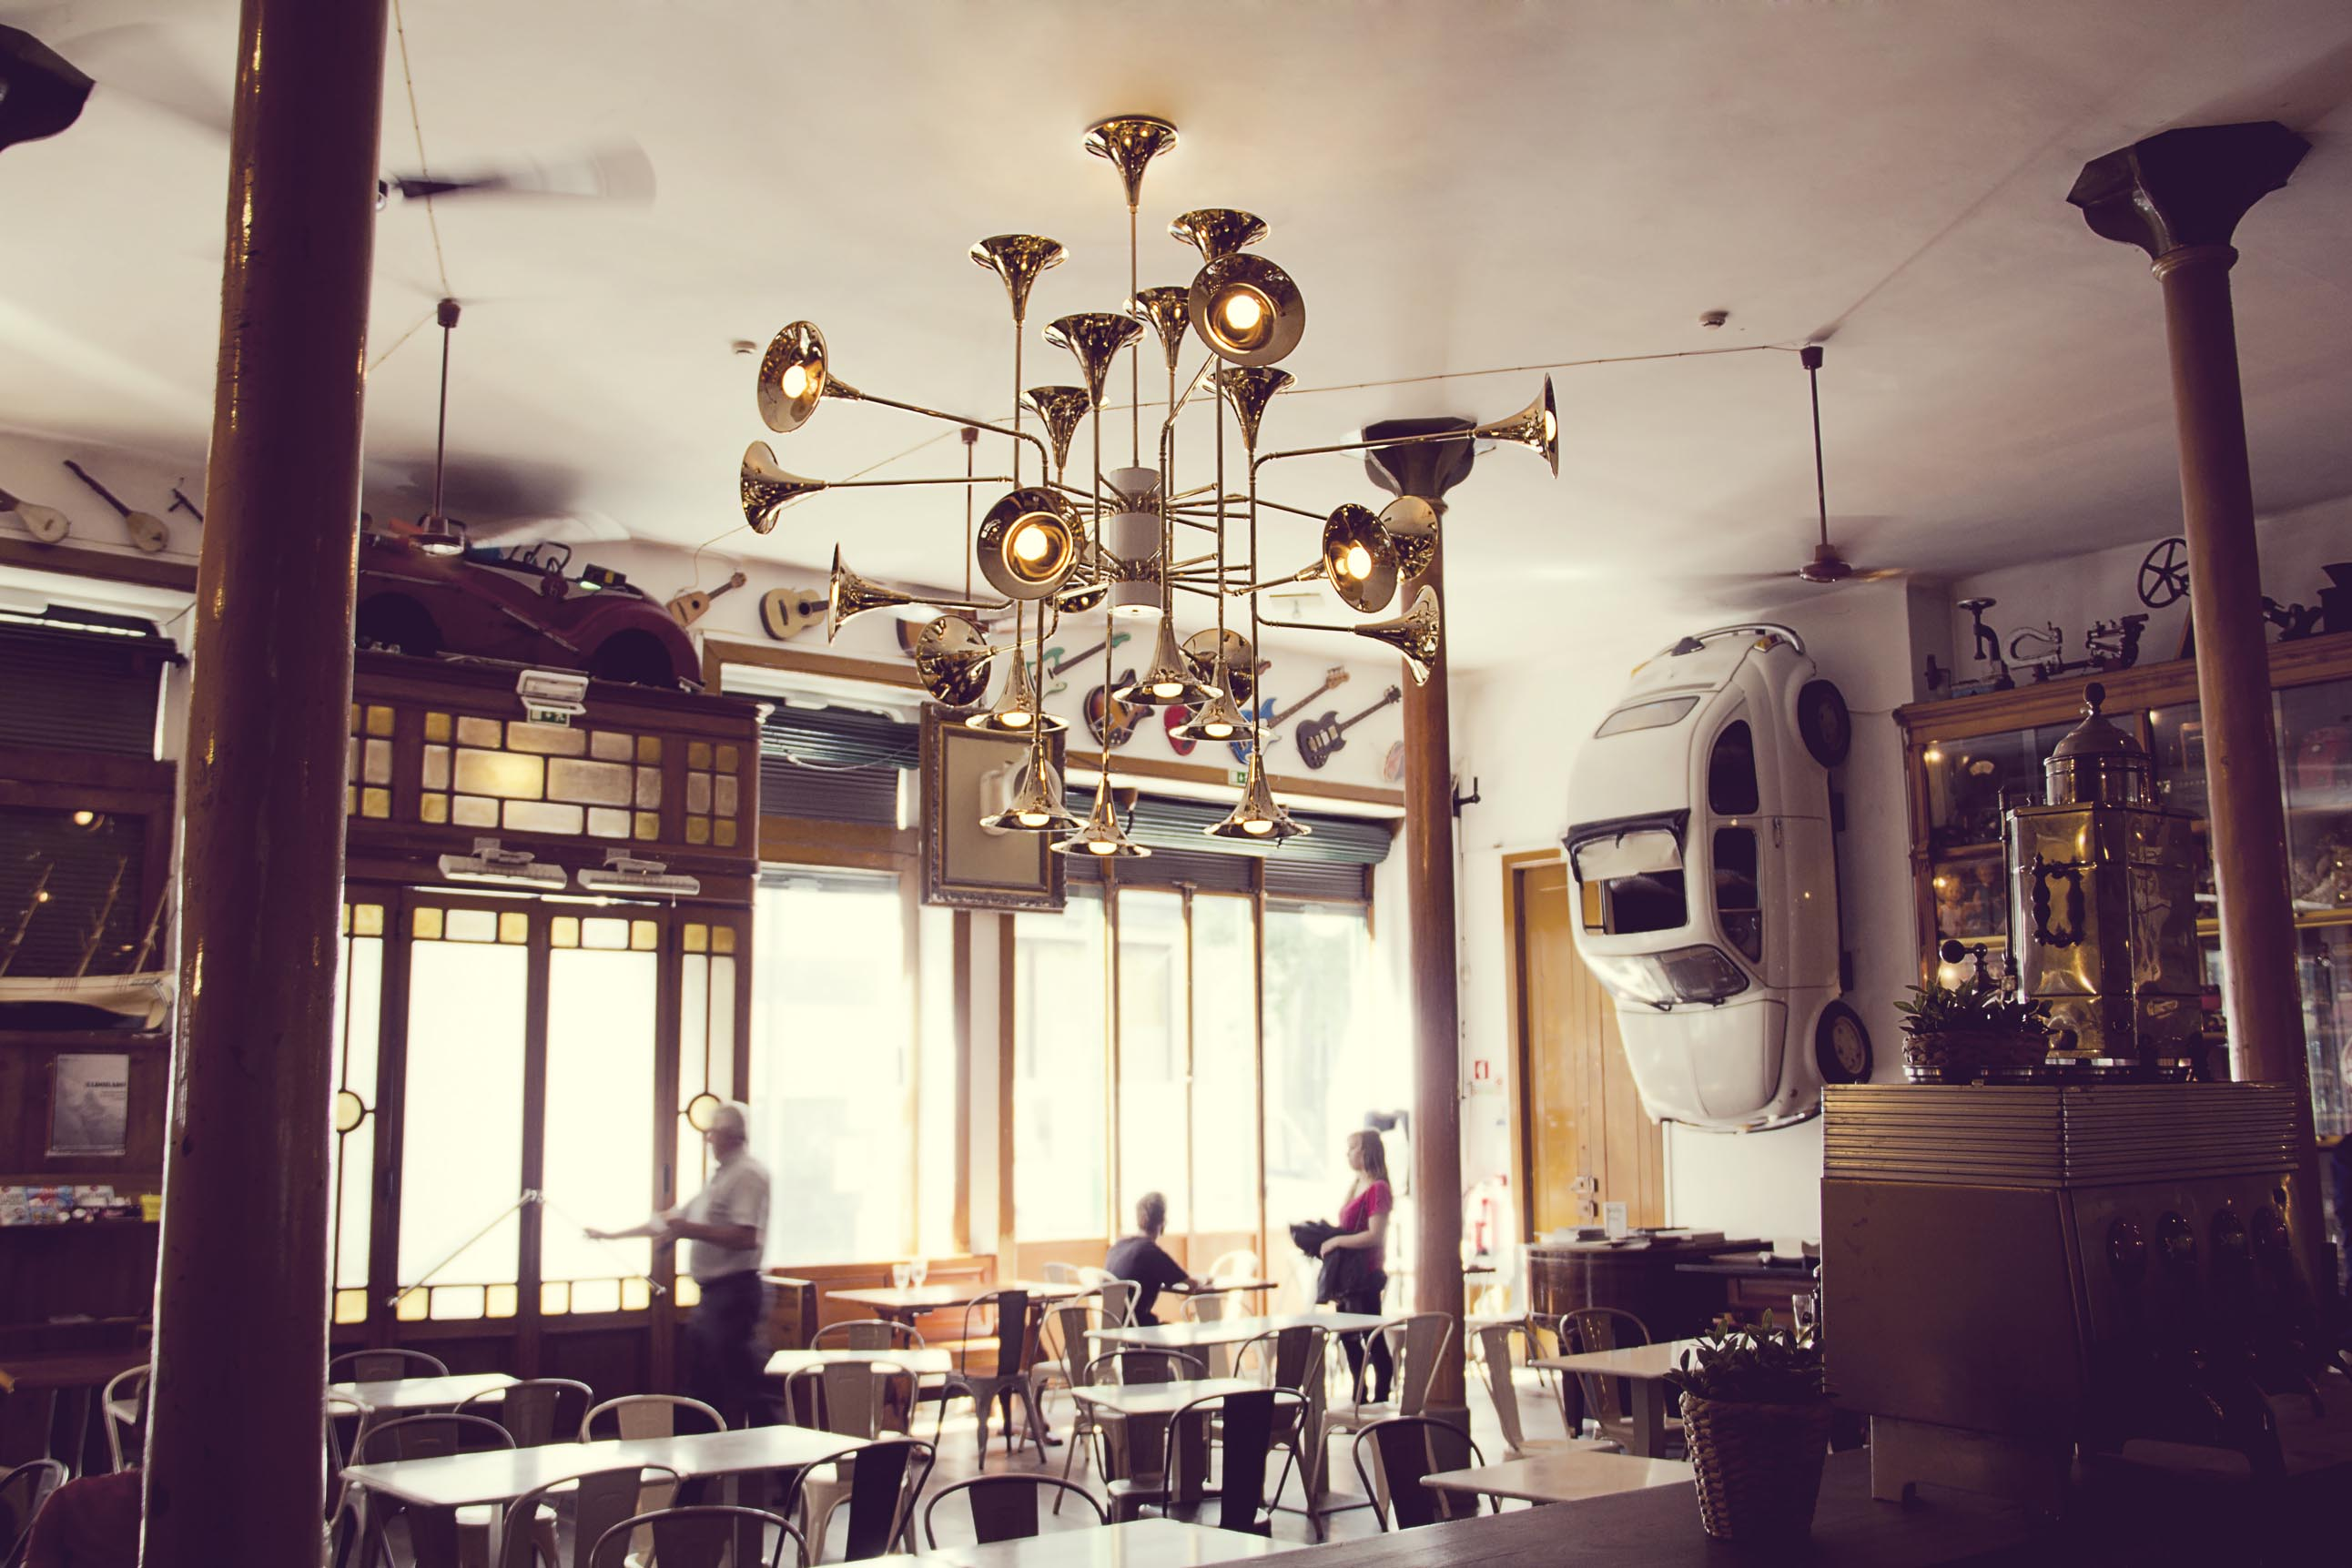 MUSIC INSPIRED SUSPENSION LAMP AT A VINTAGE RESTAURANT